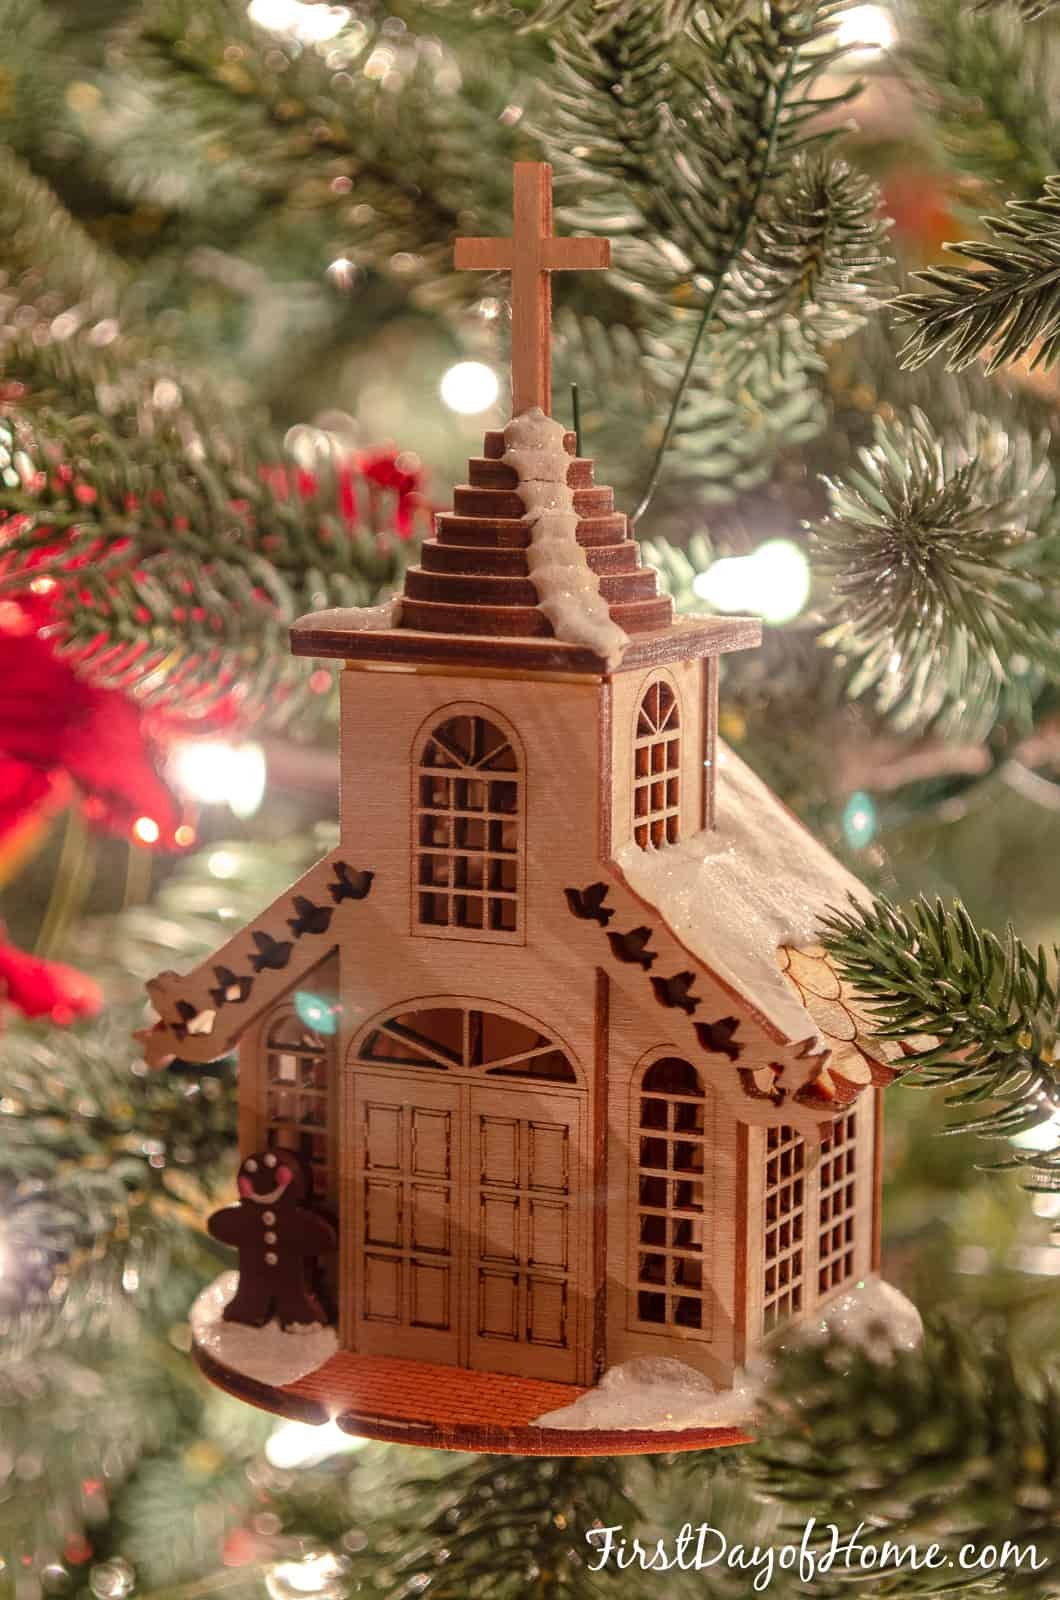 Gingerbread cottage wooden ornament hanging on tree